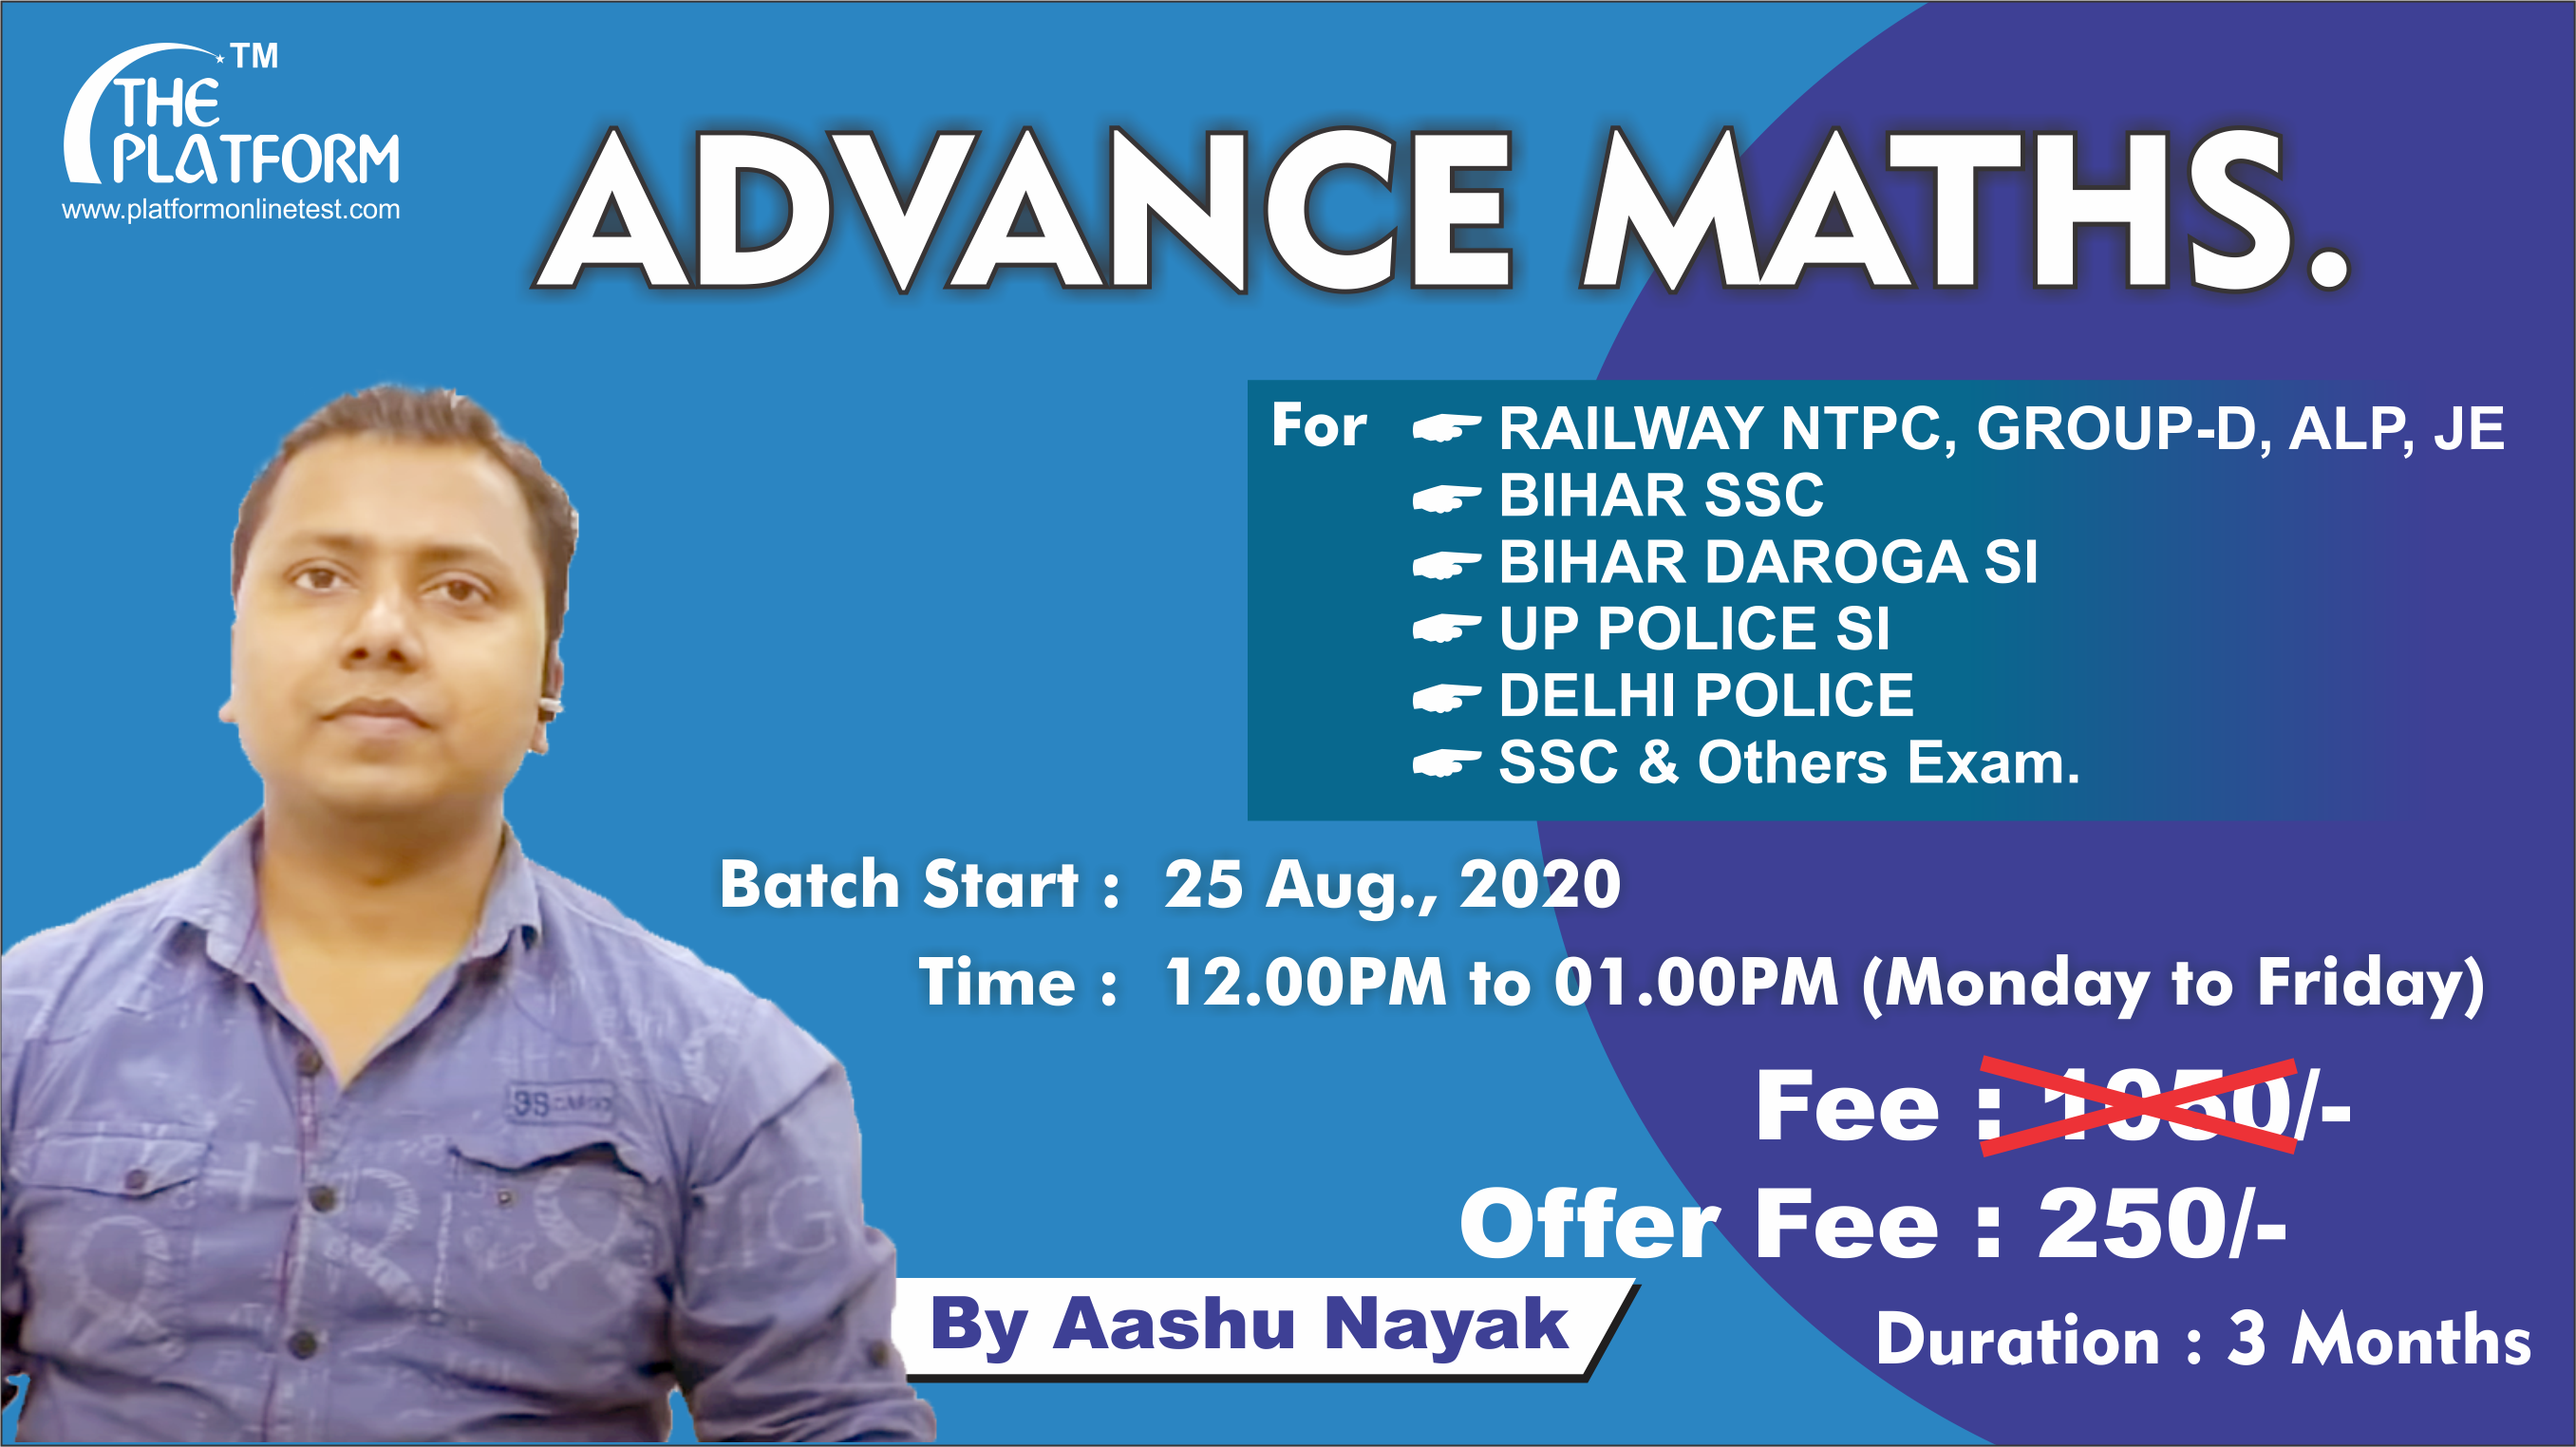 23-ADVANCE MATHS. By Aashu Nayak, Session-01